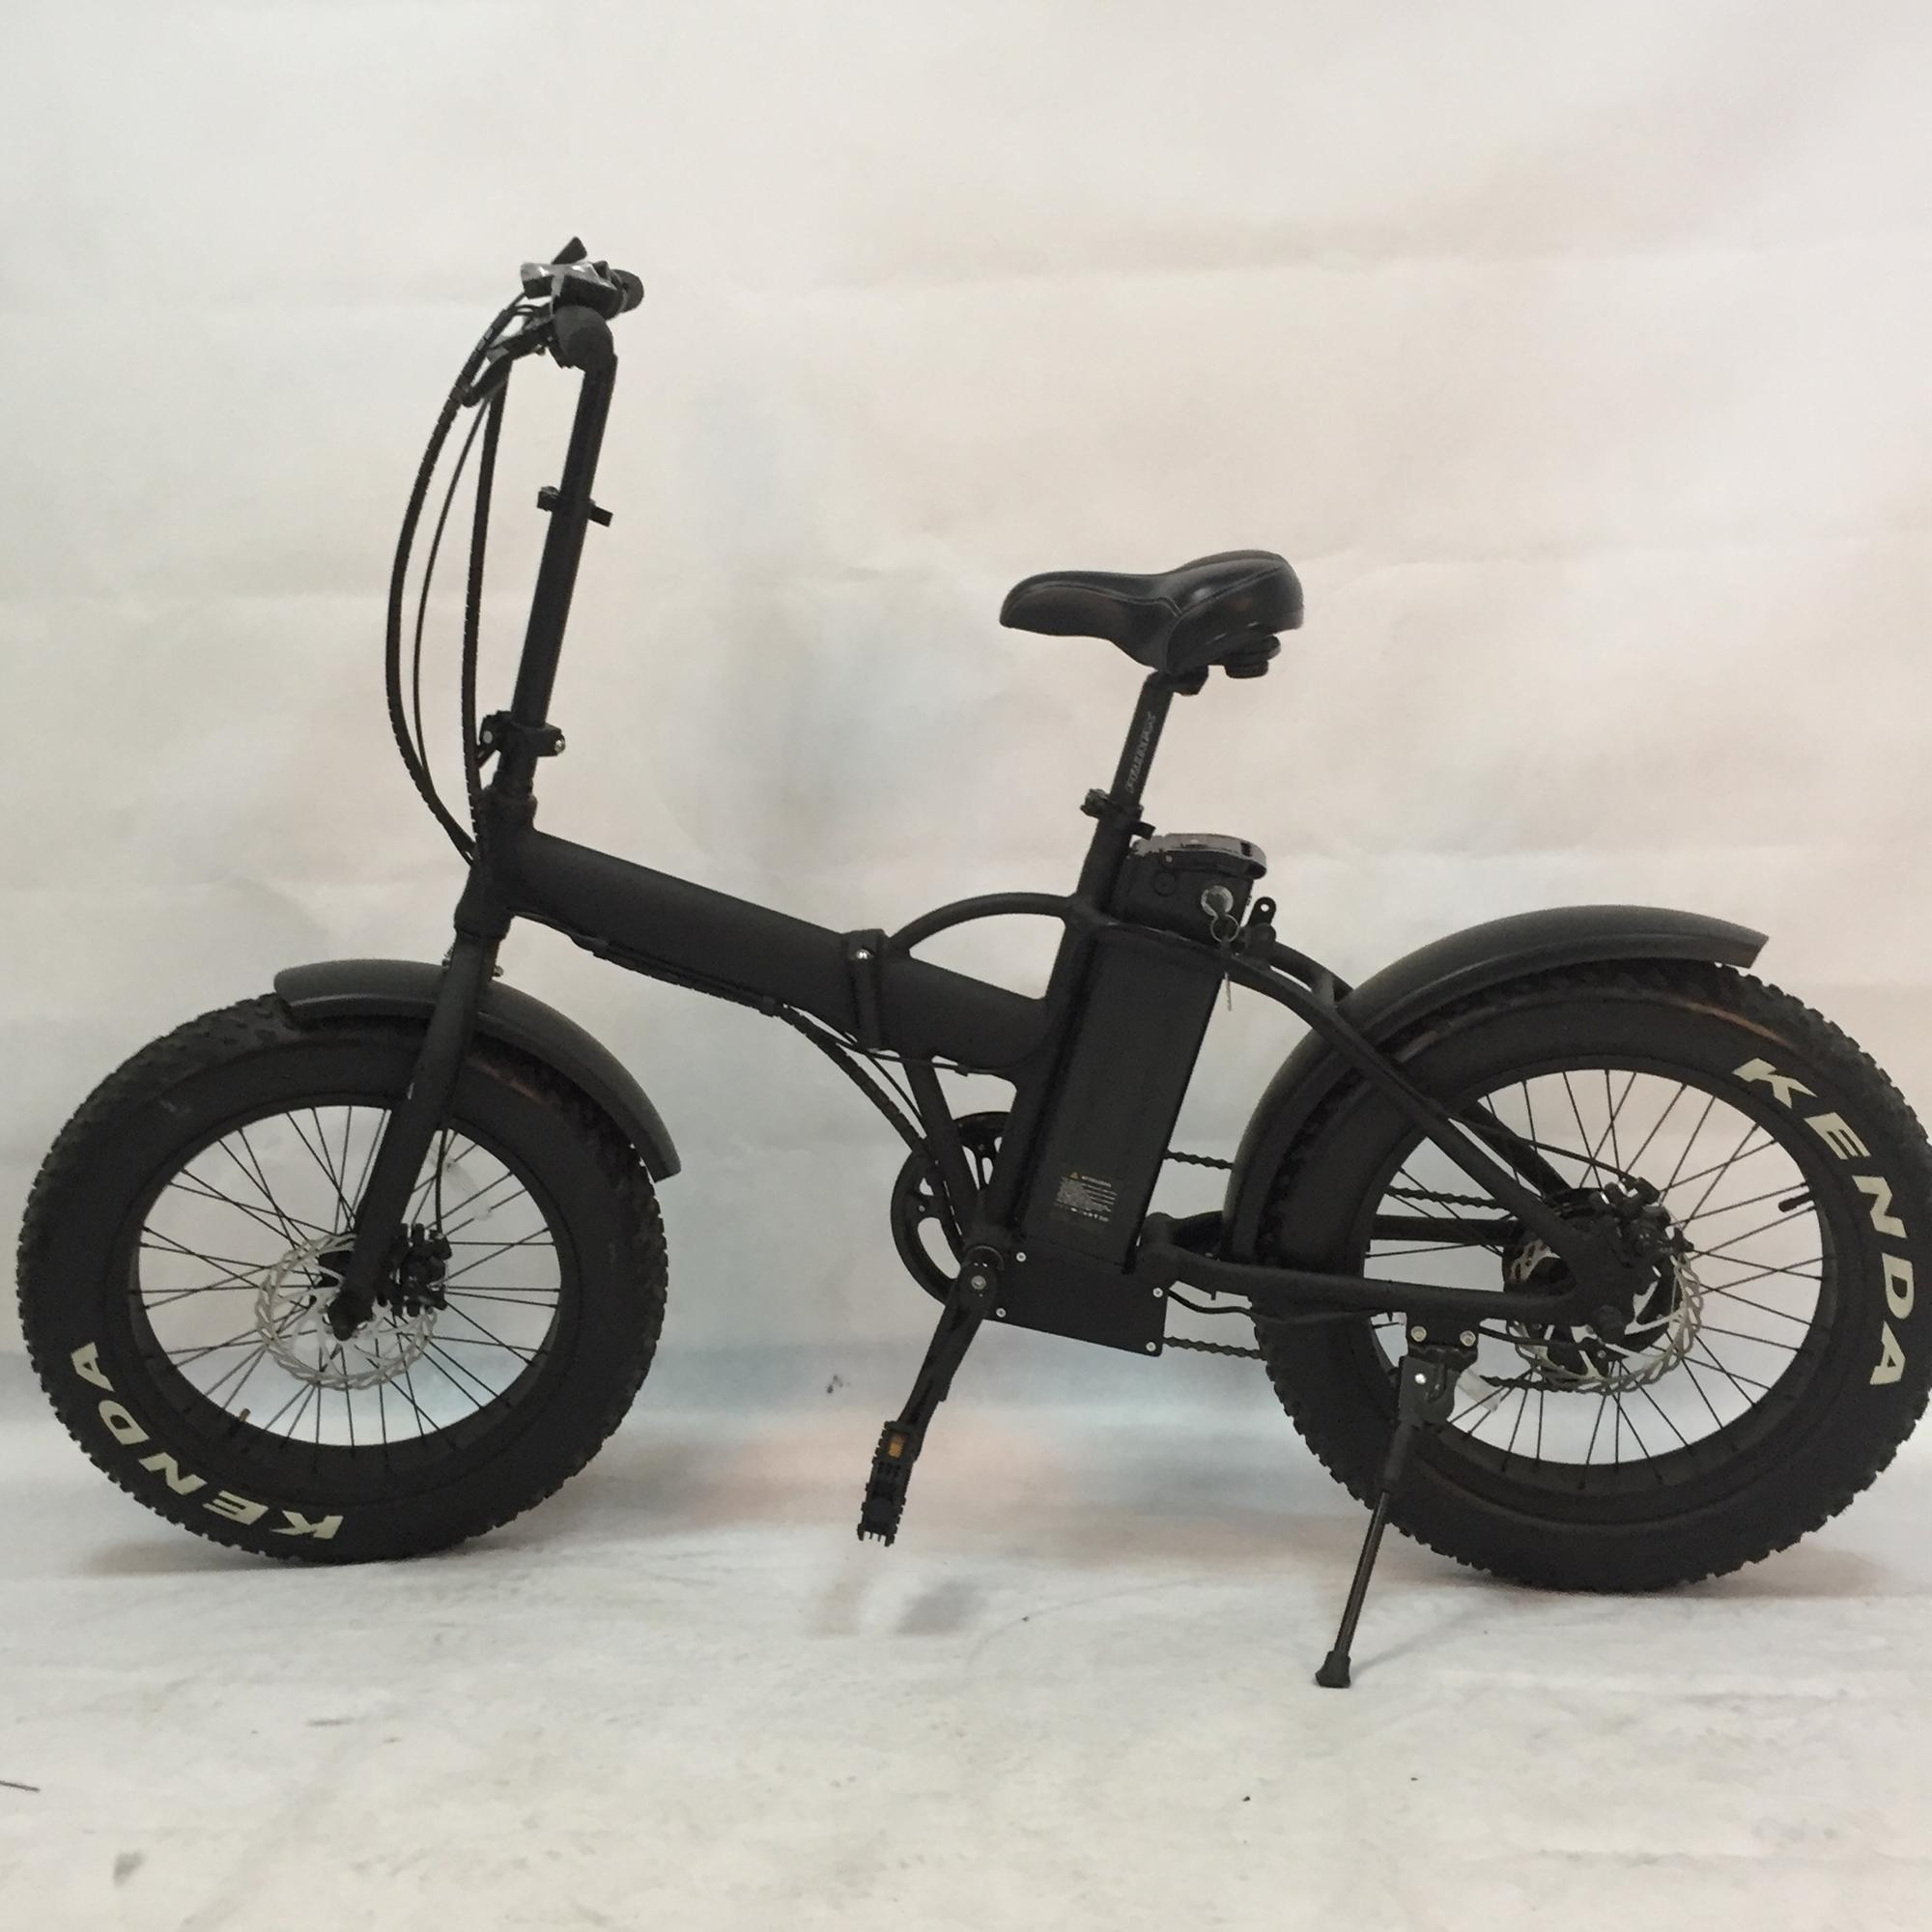 2017 hot selling bafang mid drive motor 1000w fat tire electric bicycle used electric bicycle hub motor